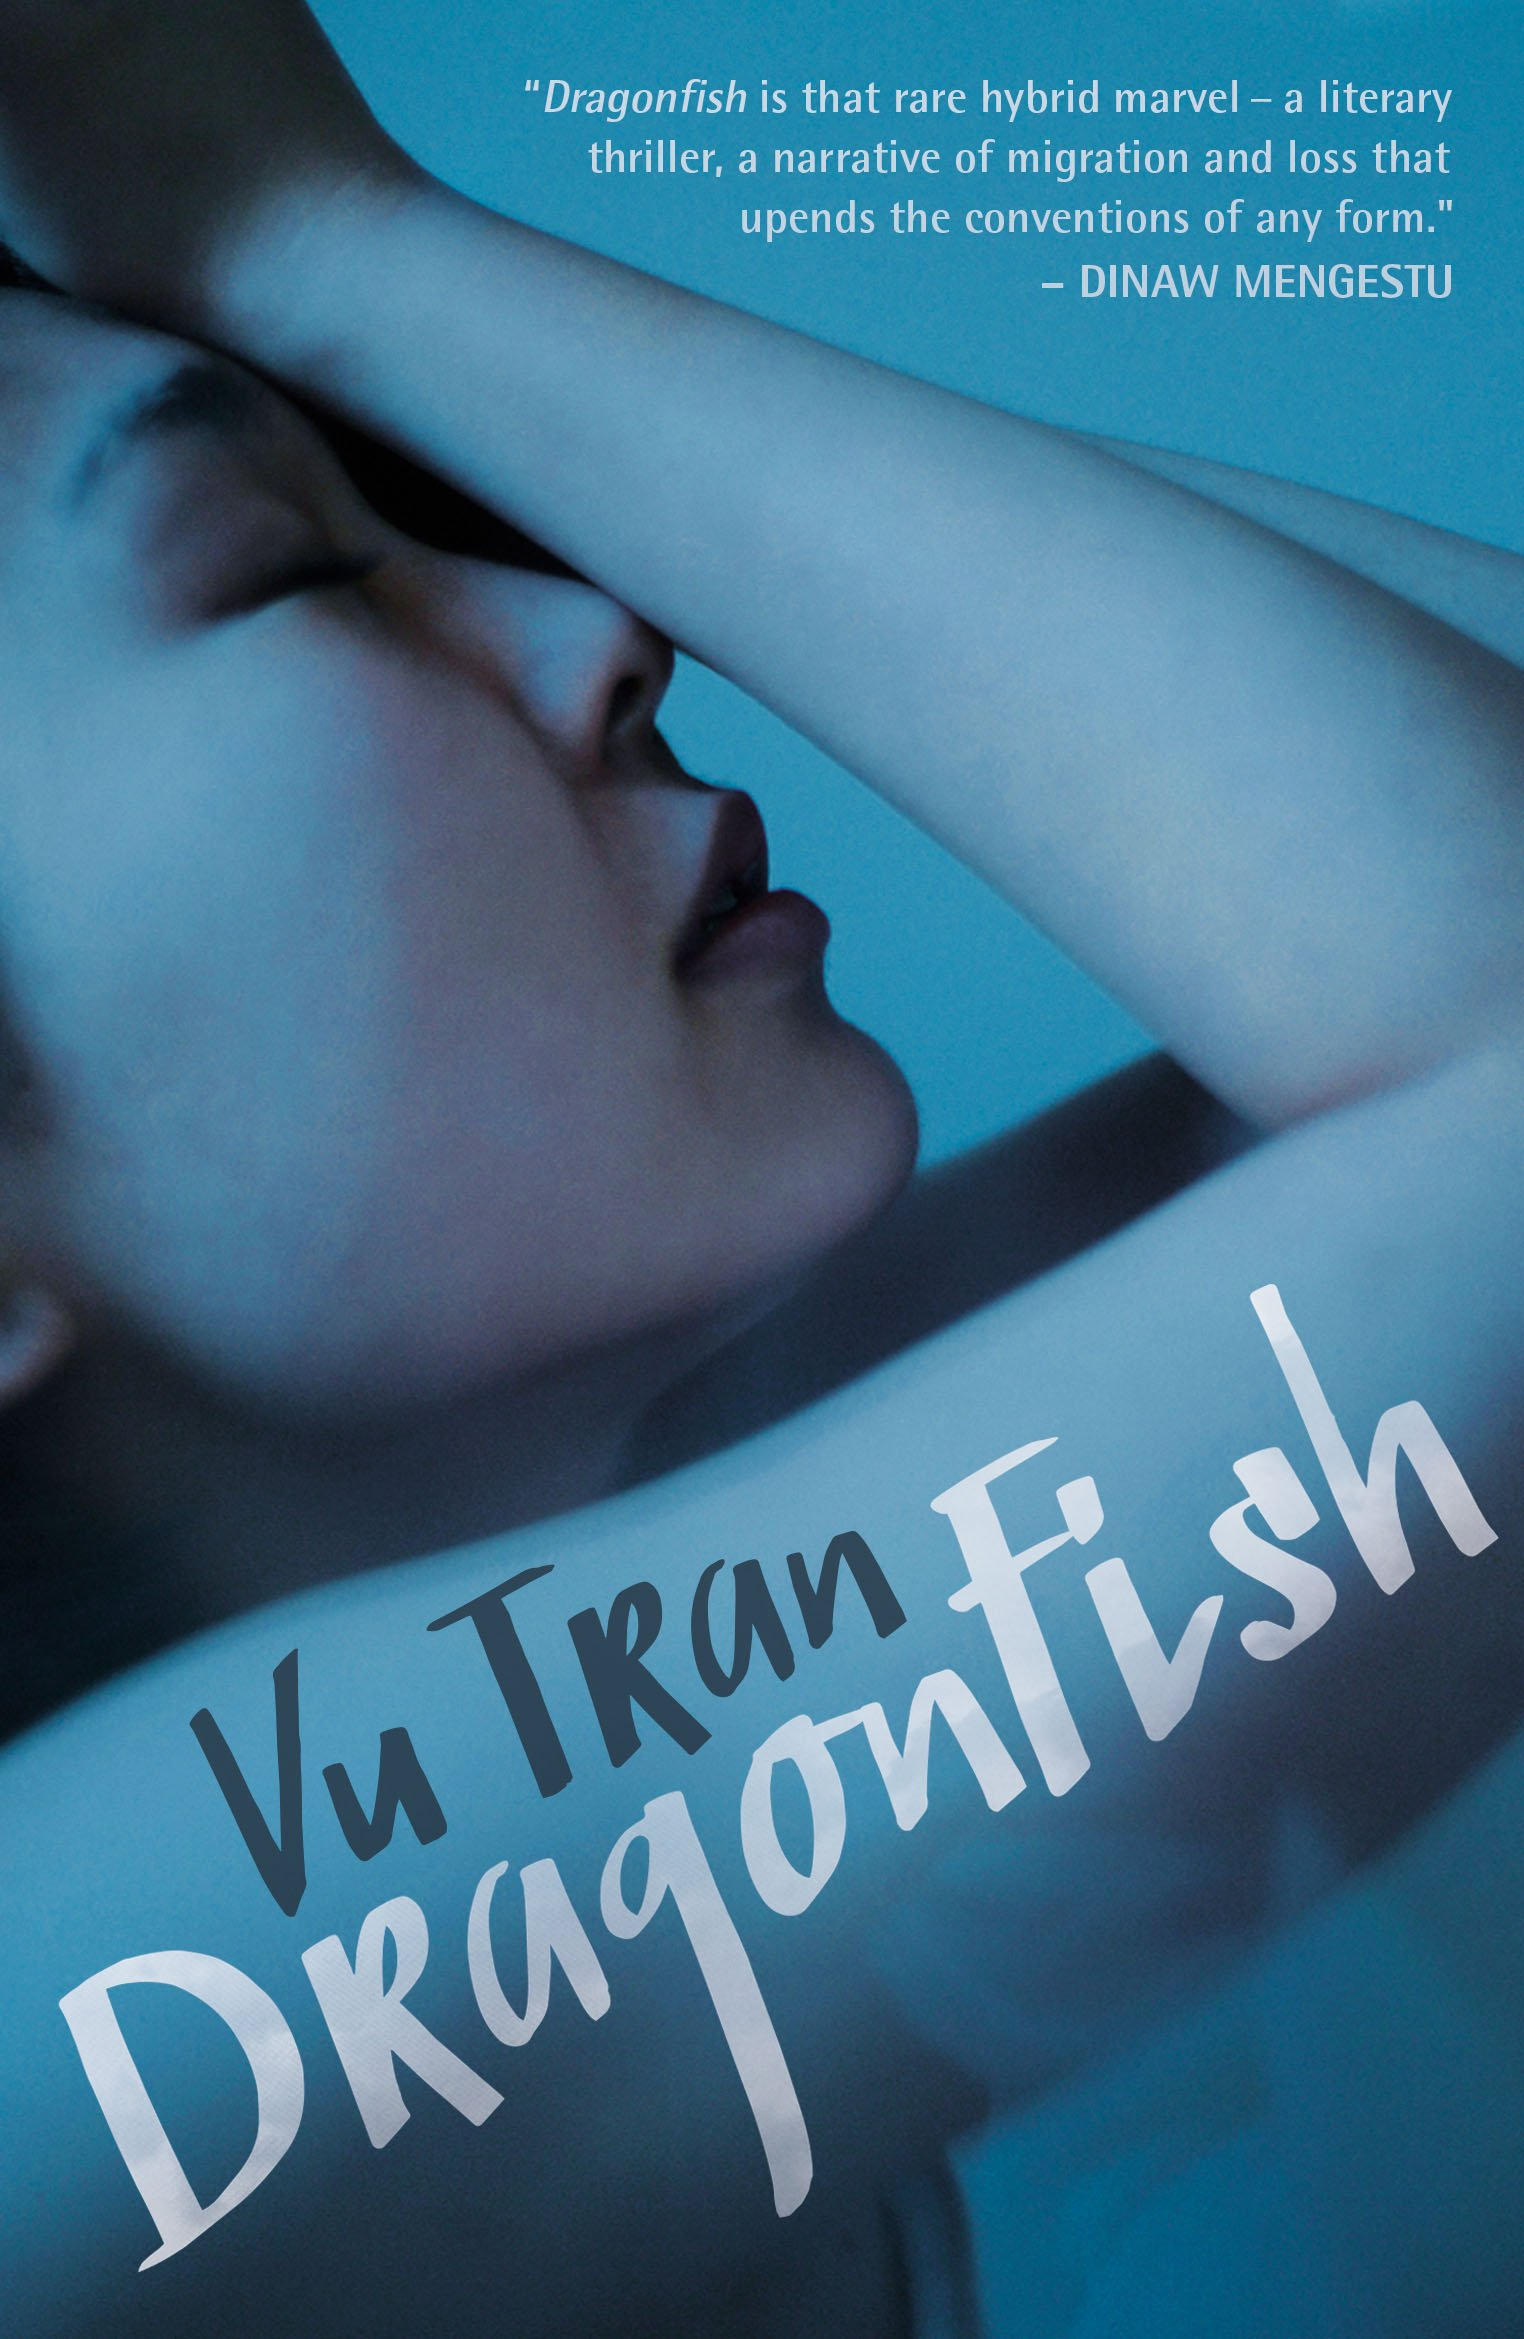 Dragonfish por Vu Tran